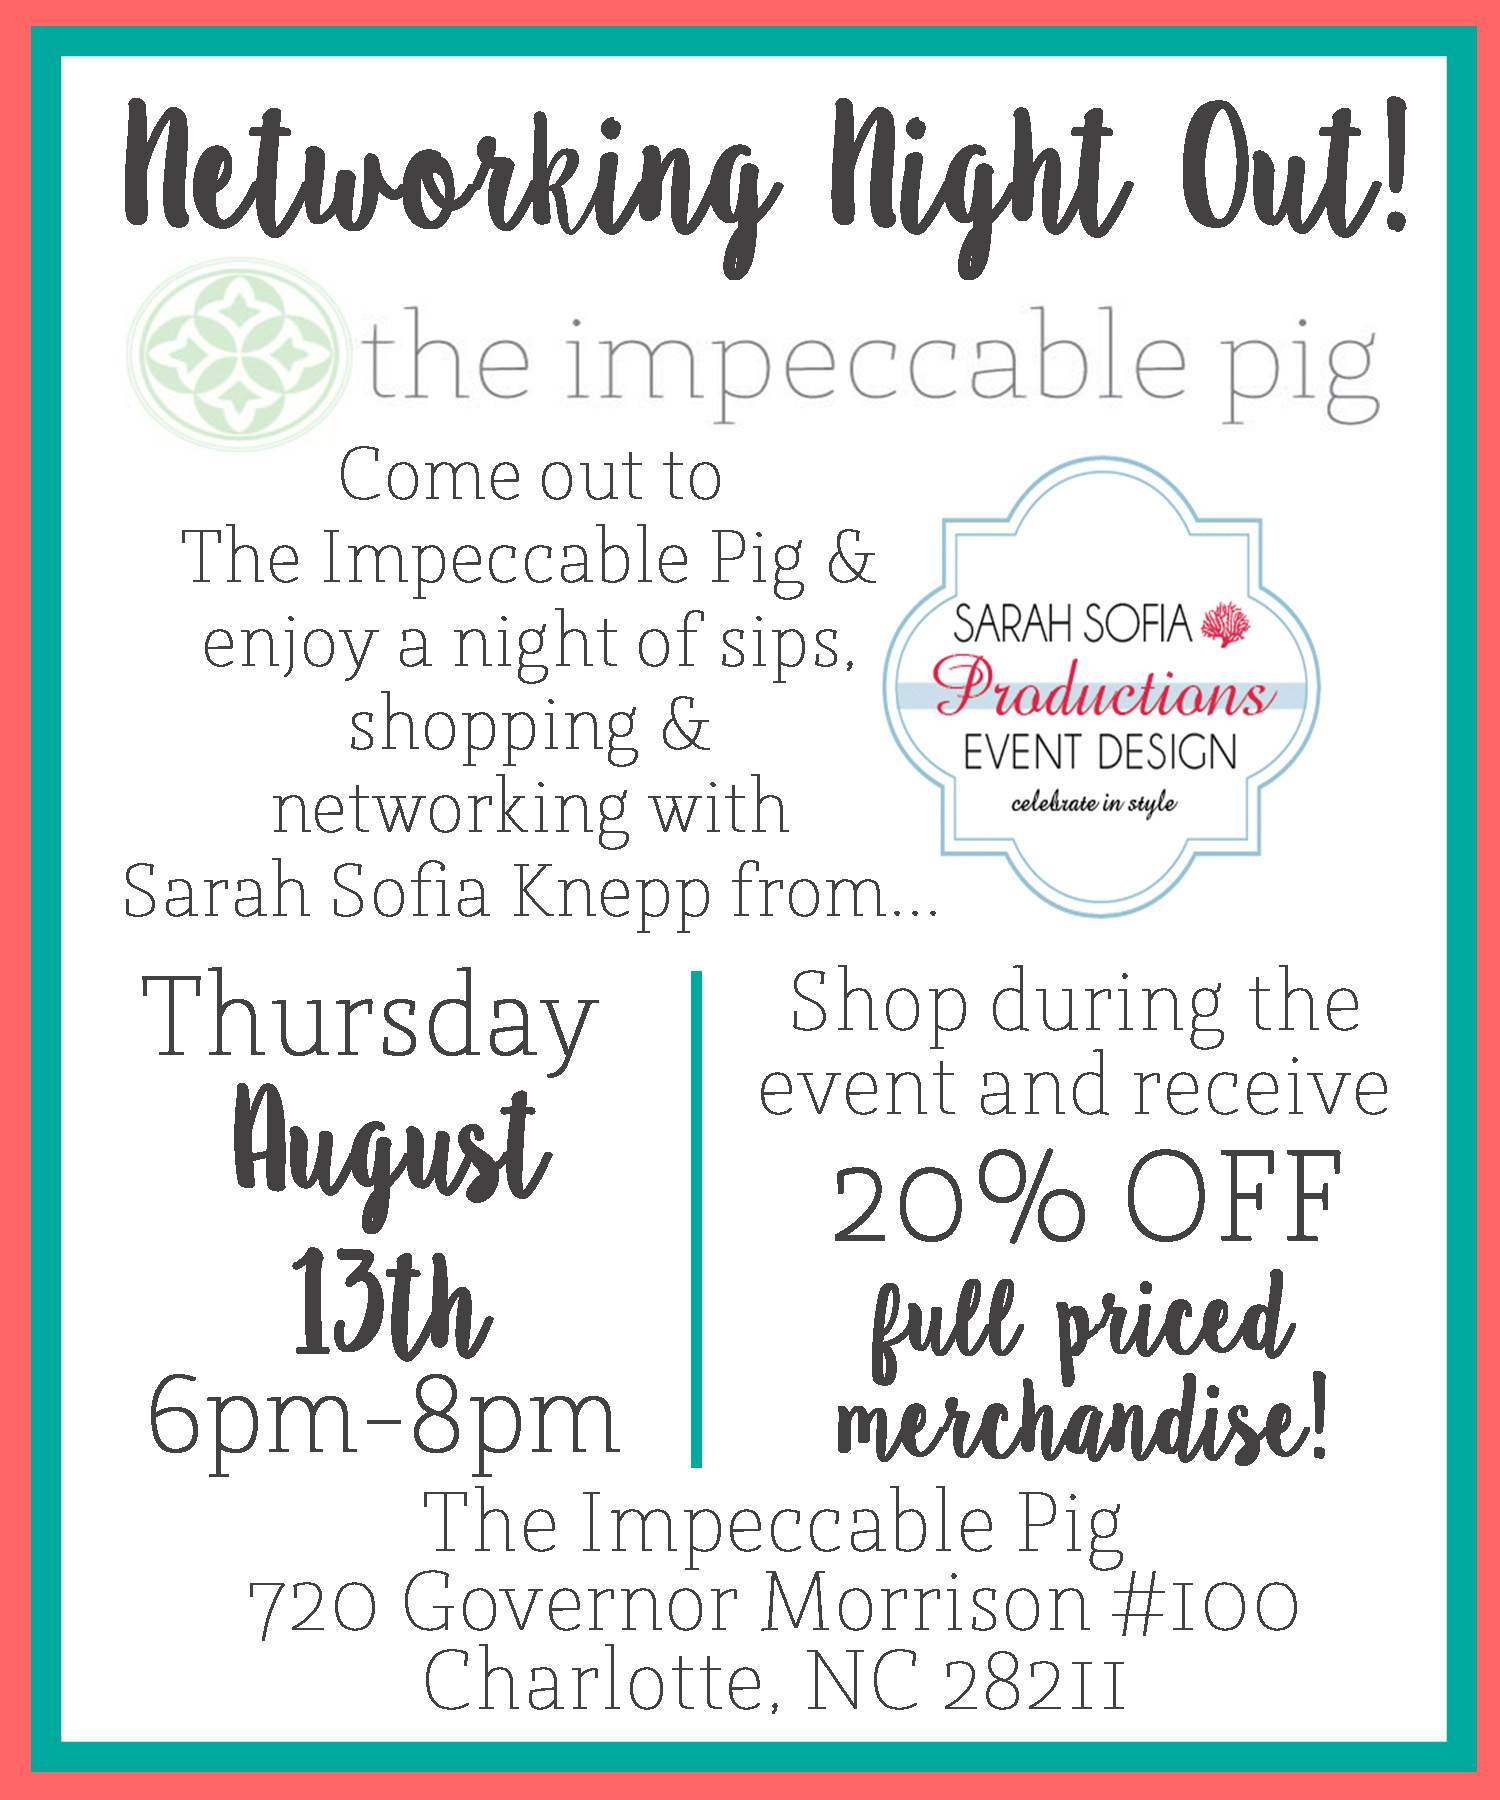 GNO Impeccable Pig Sarah Sofia Productions I Pigged Out For A Week